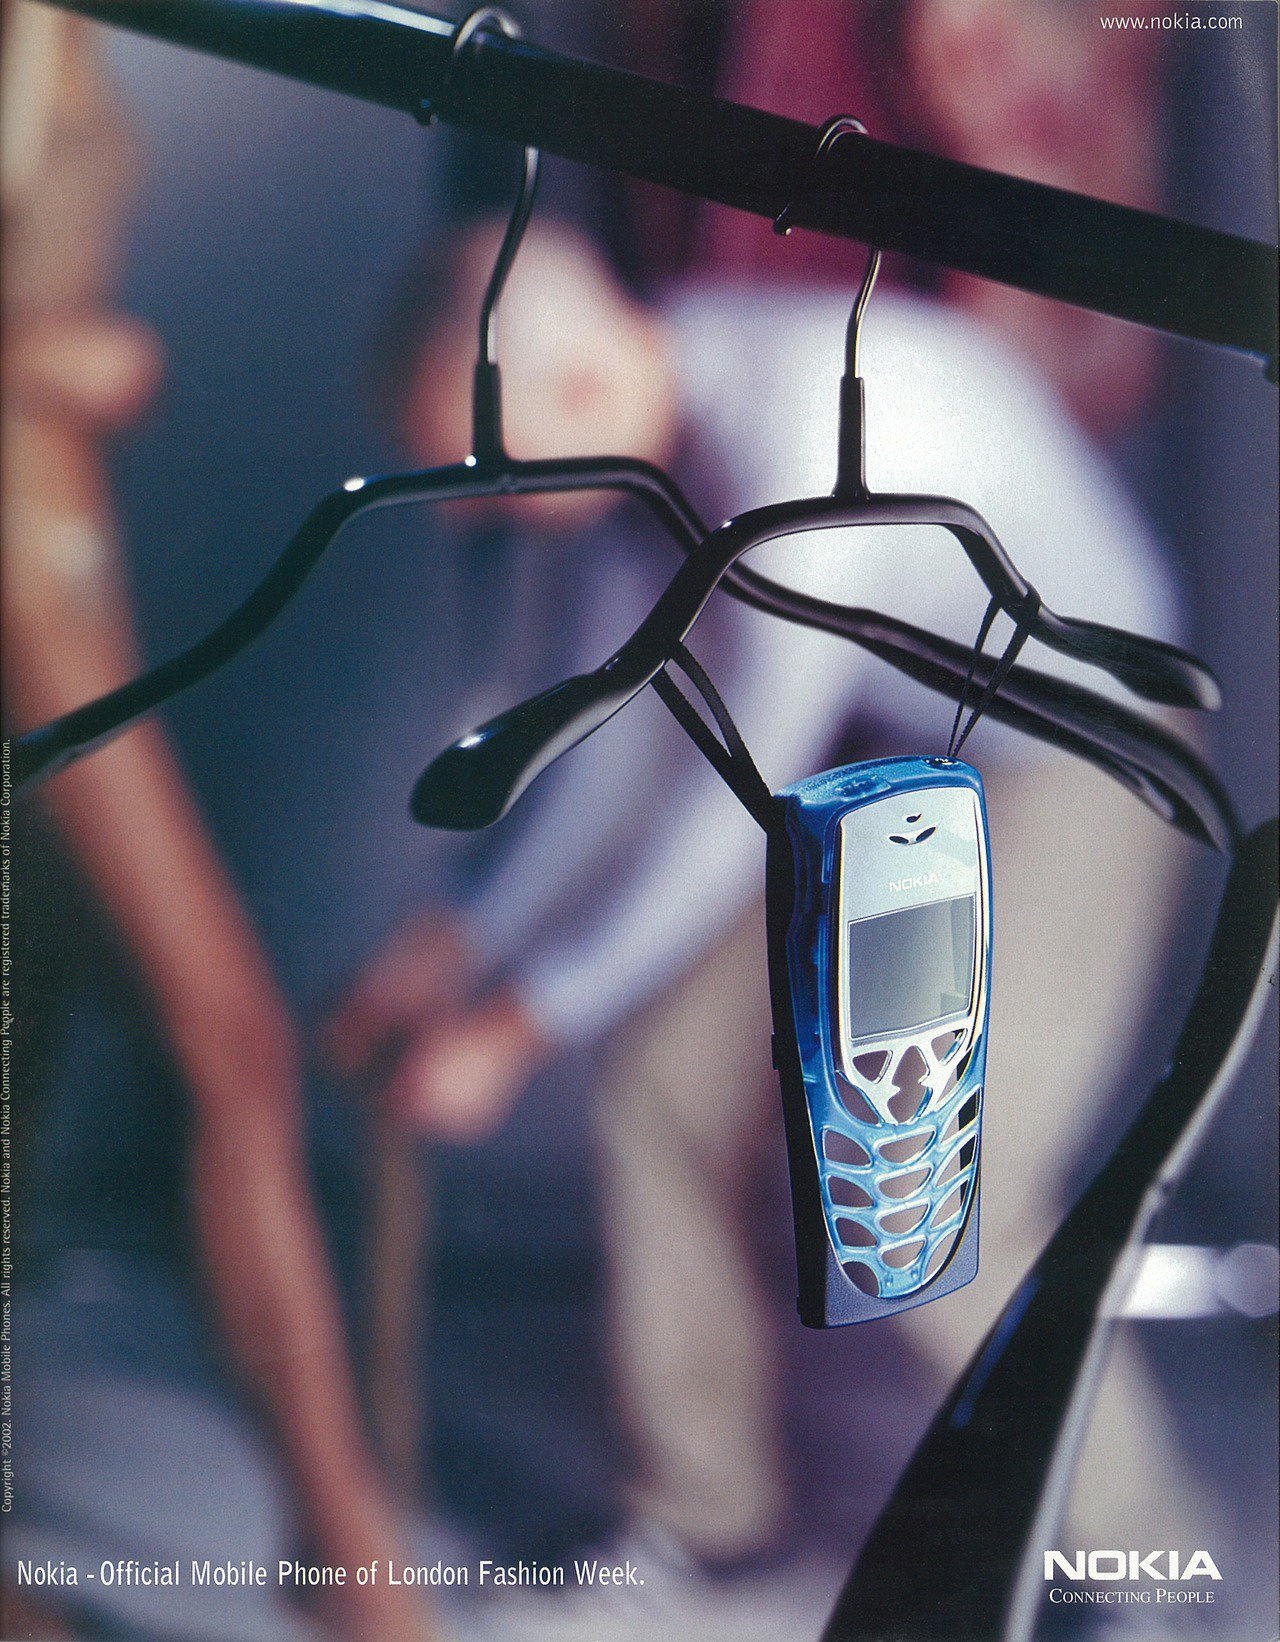 Y2k Aesthetic Institute Blm On Twitter Nokia In Sleazenation March 2002 Vol 4 Issue 13 Nokia Official Mobile Phone Of London Fashion Week Thanks To Adarchives On Tumblr Https T Co 6vudex1huz